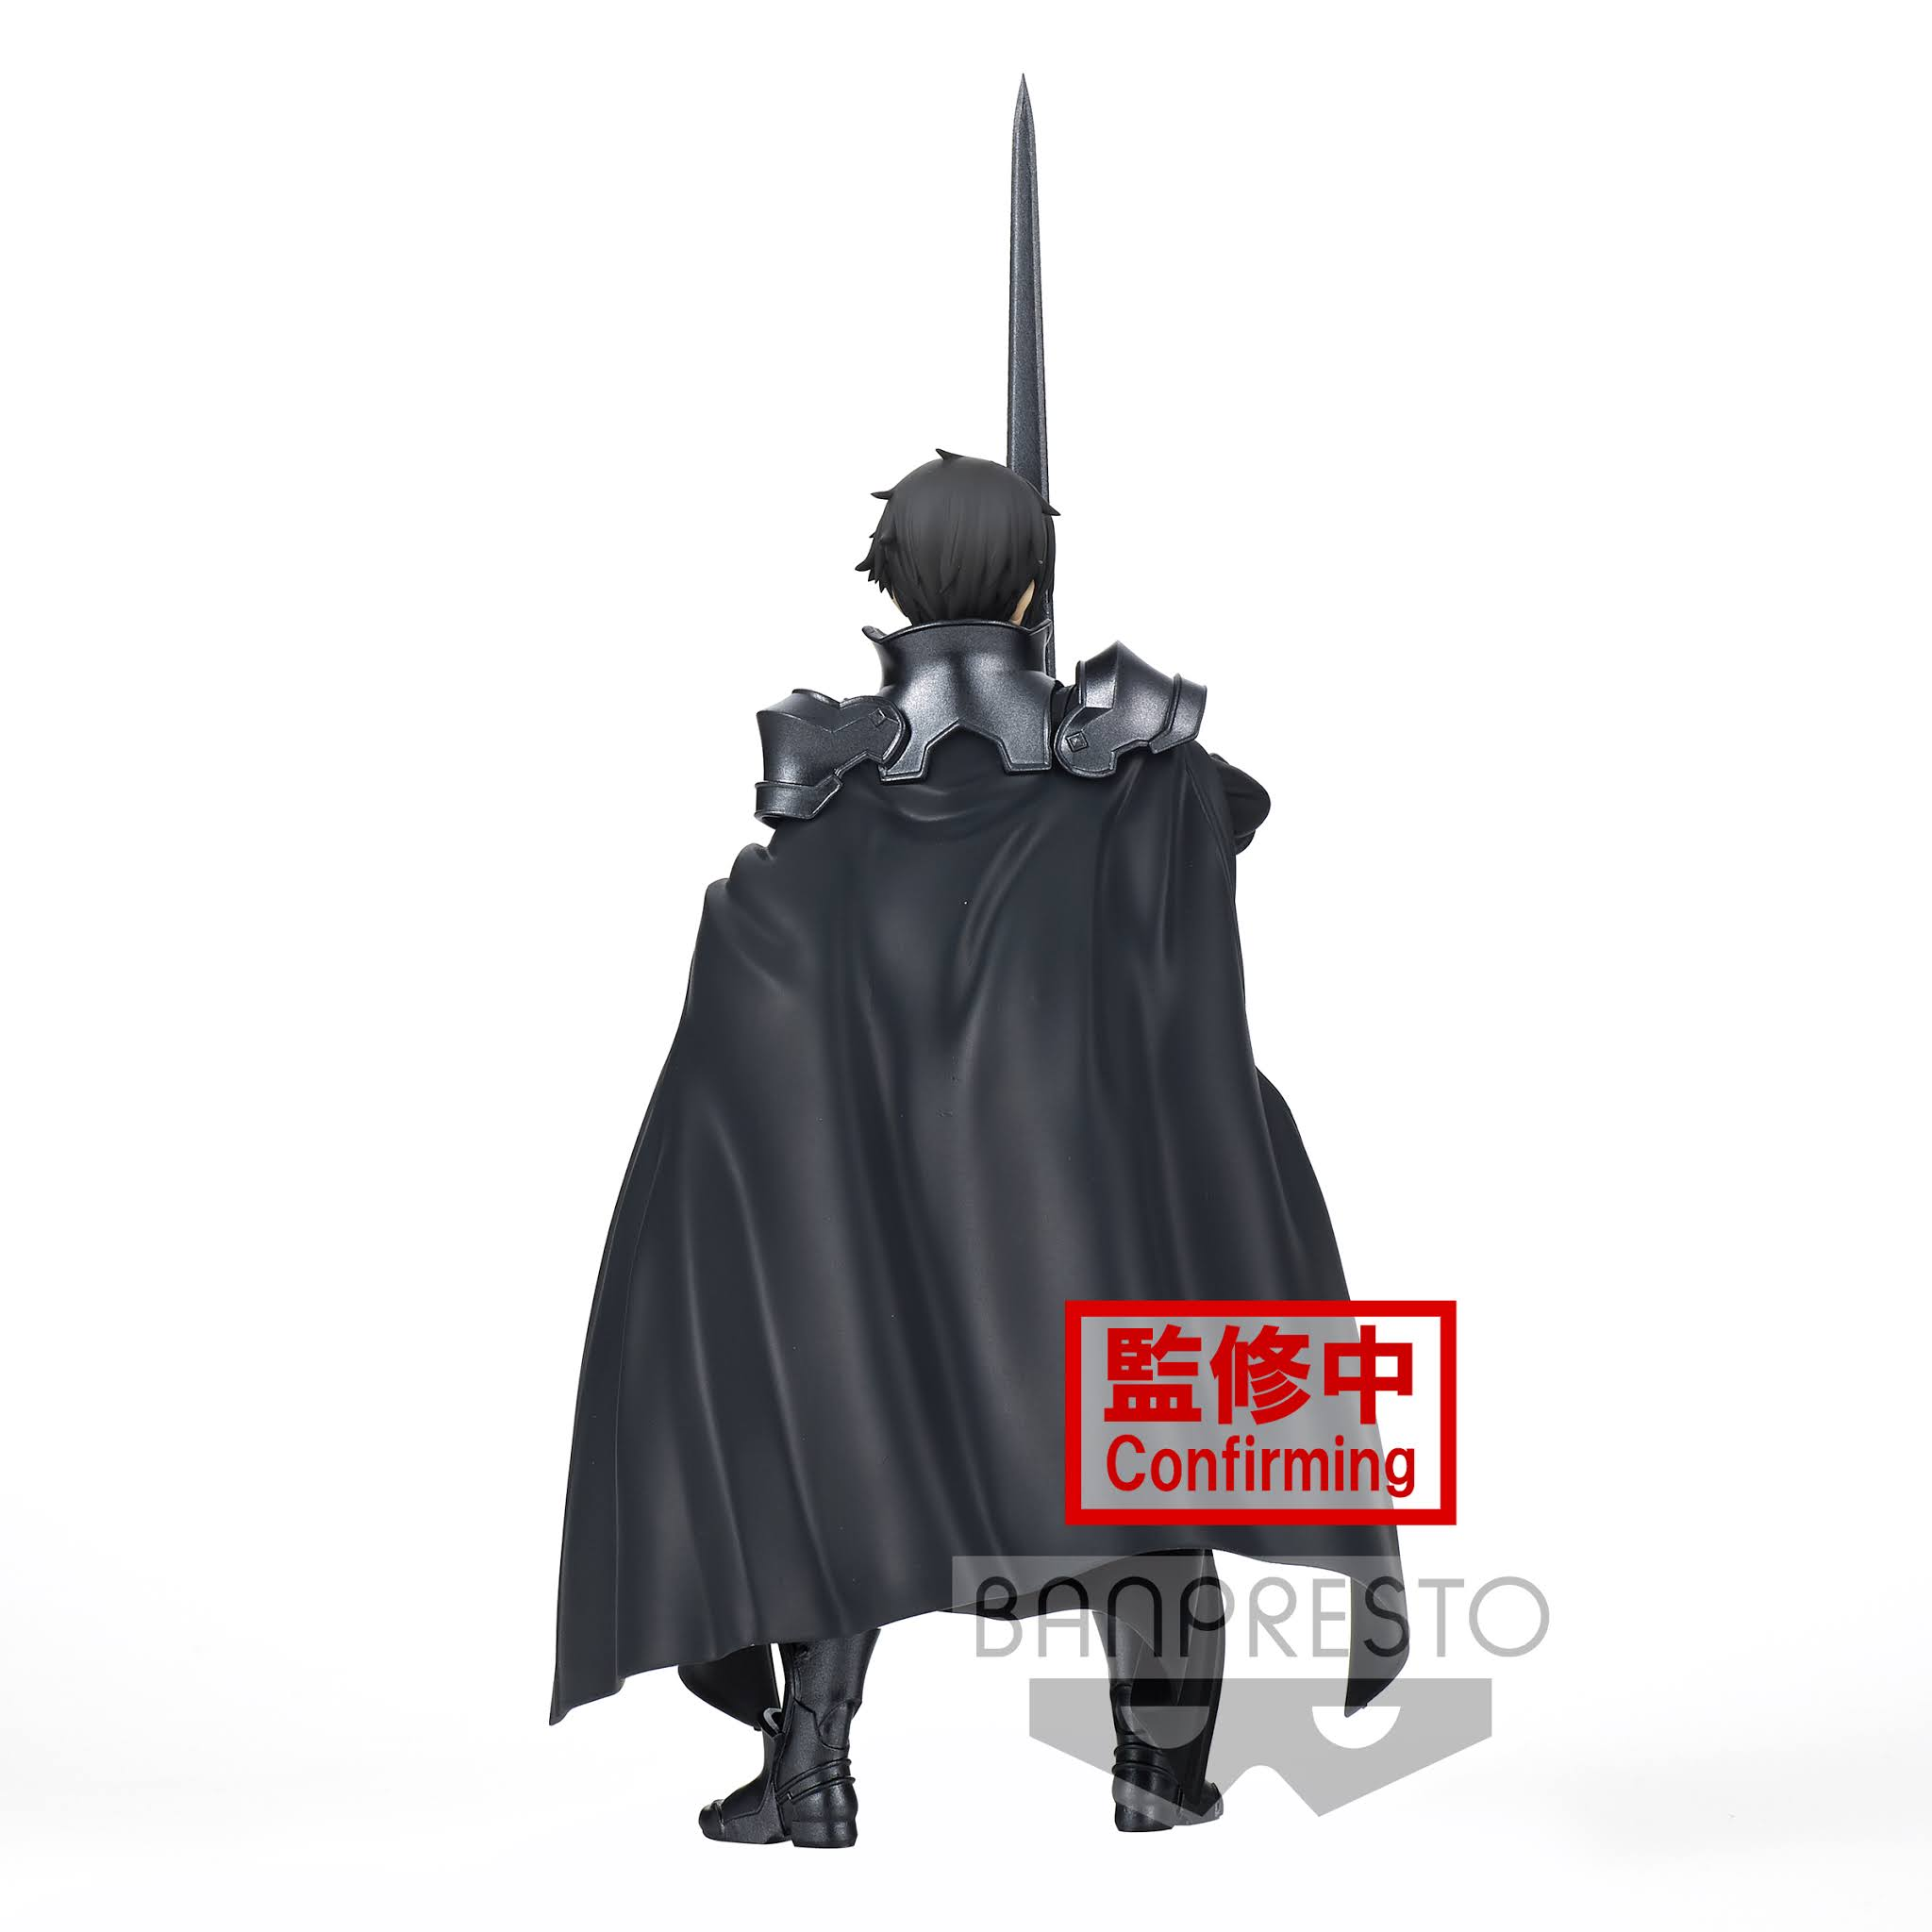 Rising Steel Integrity Knight Kirito Banpresto